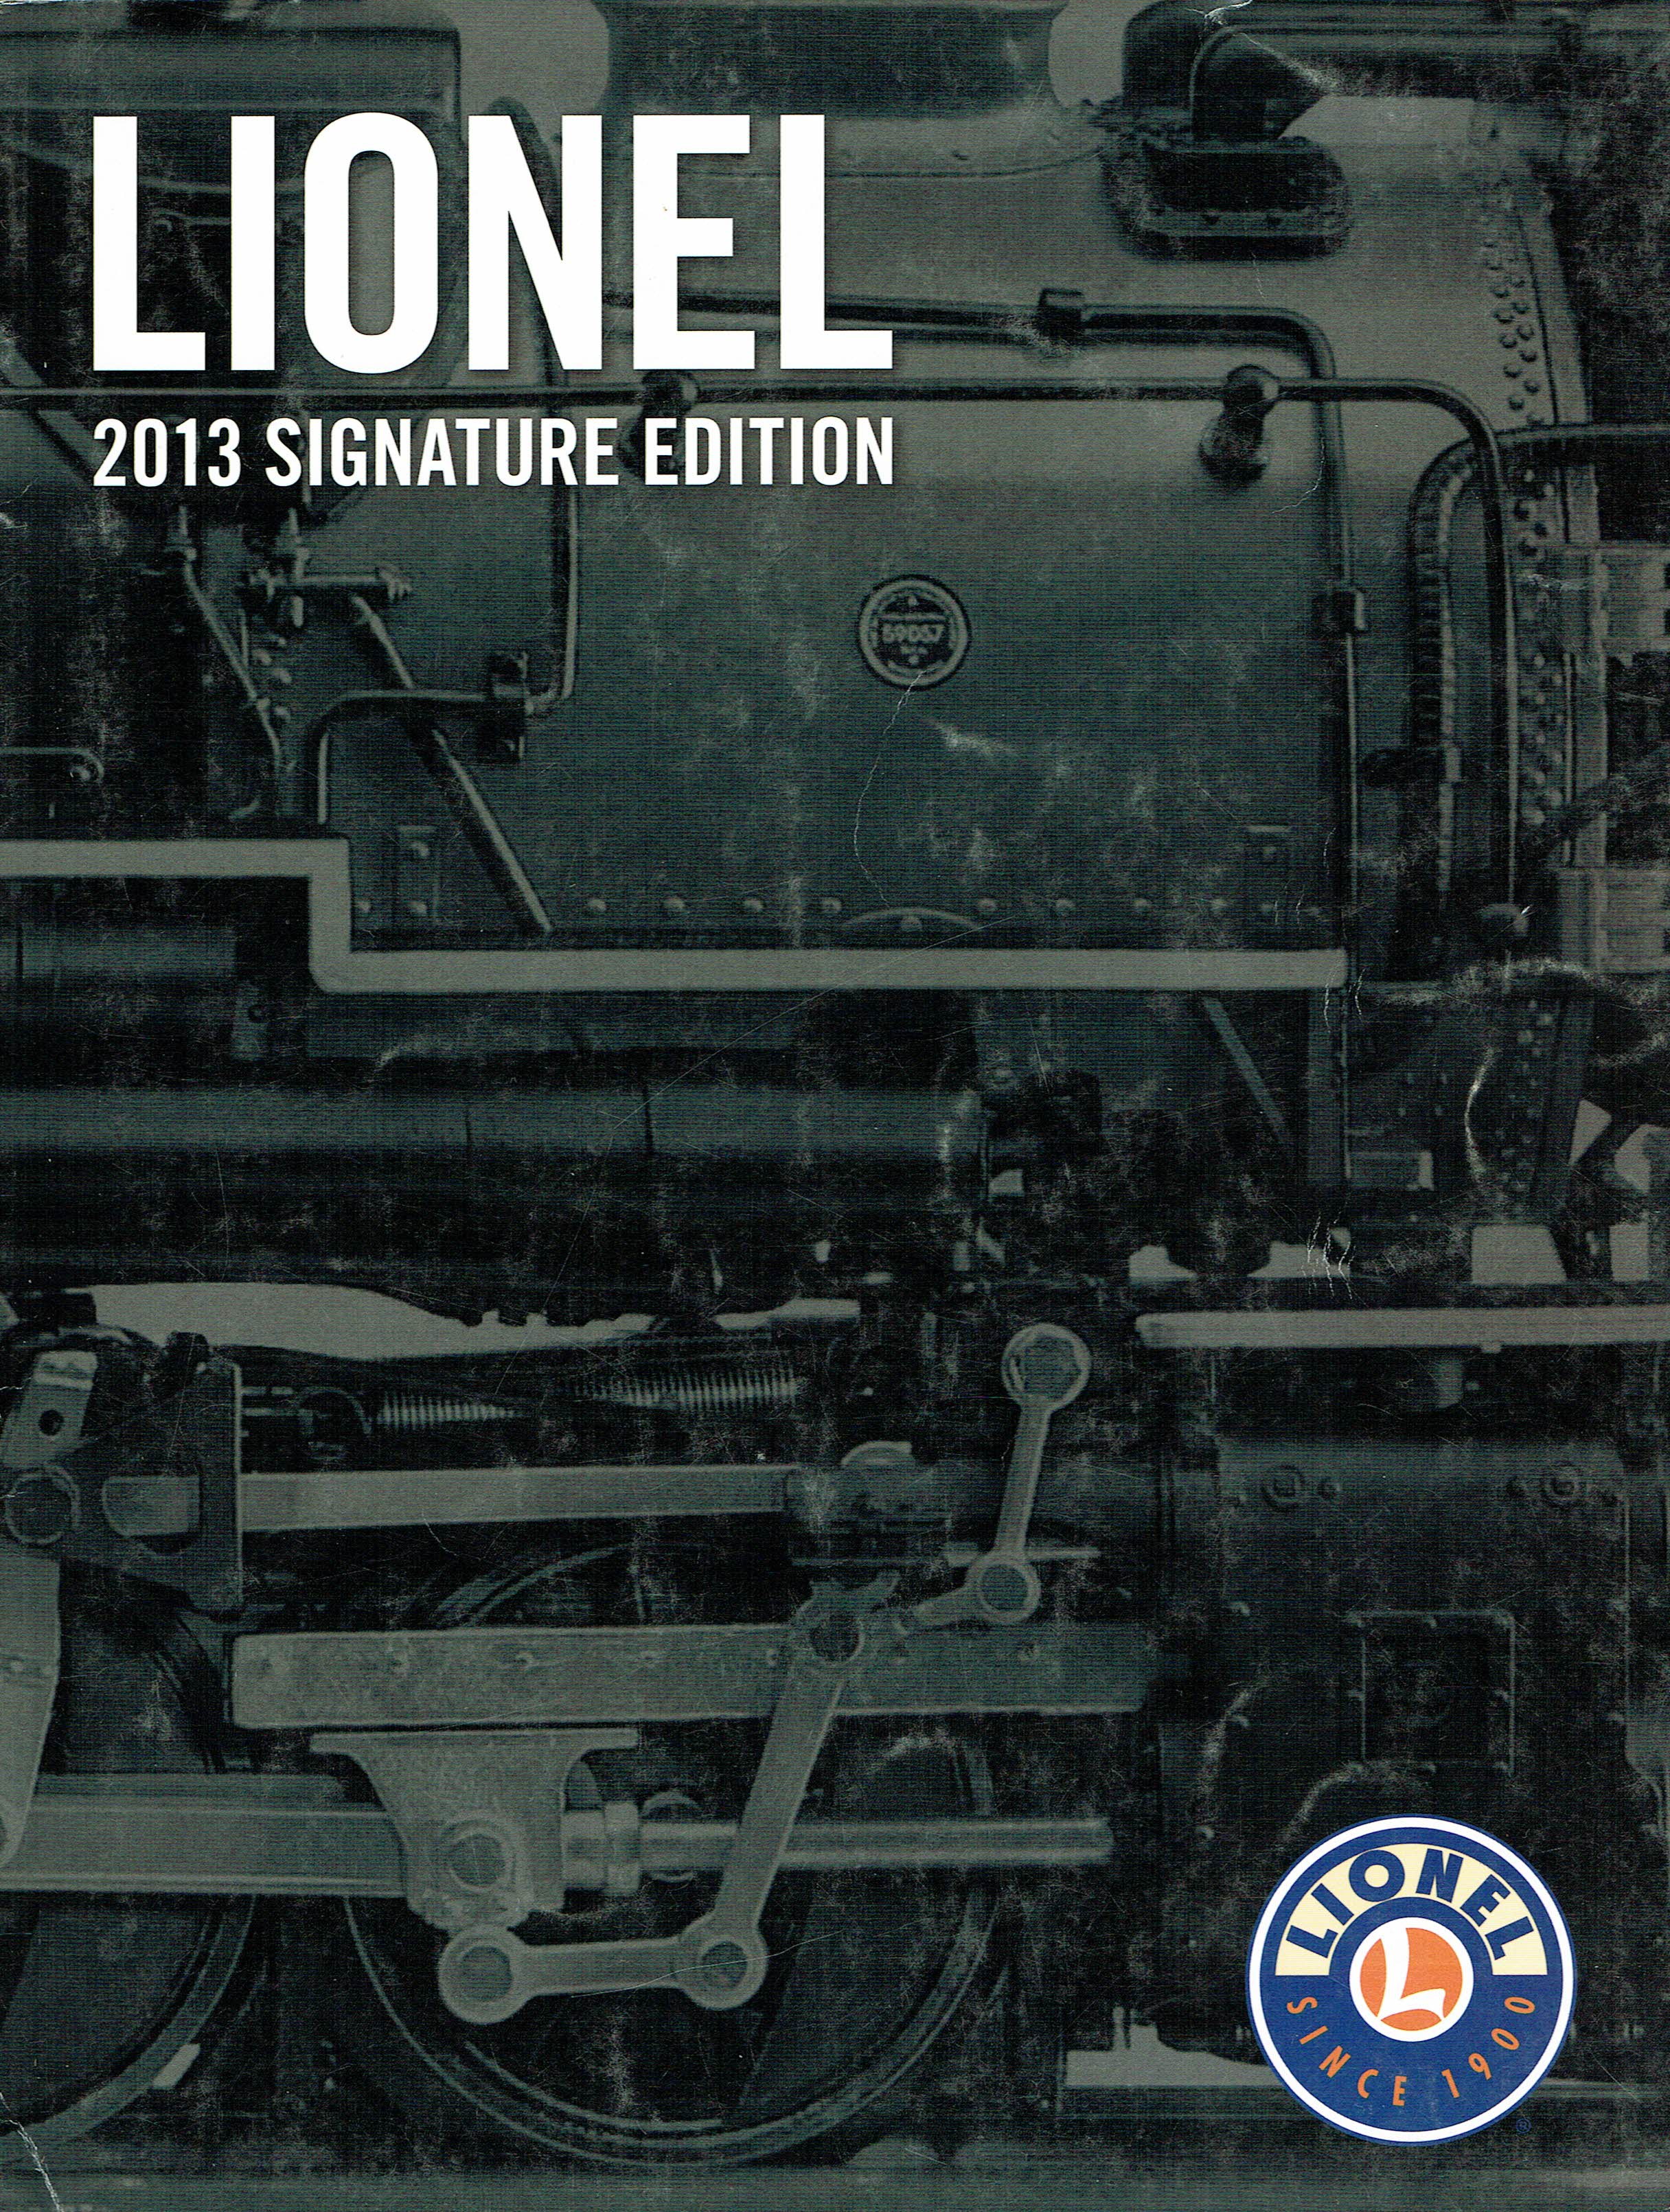 Lionel 2013 Signature Edition Catalog image